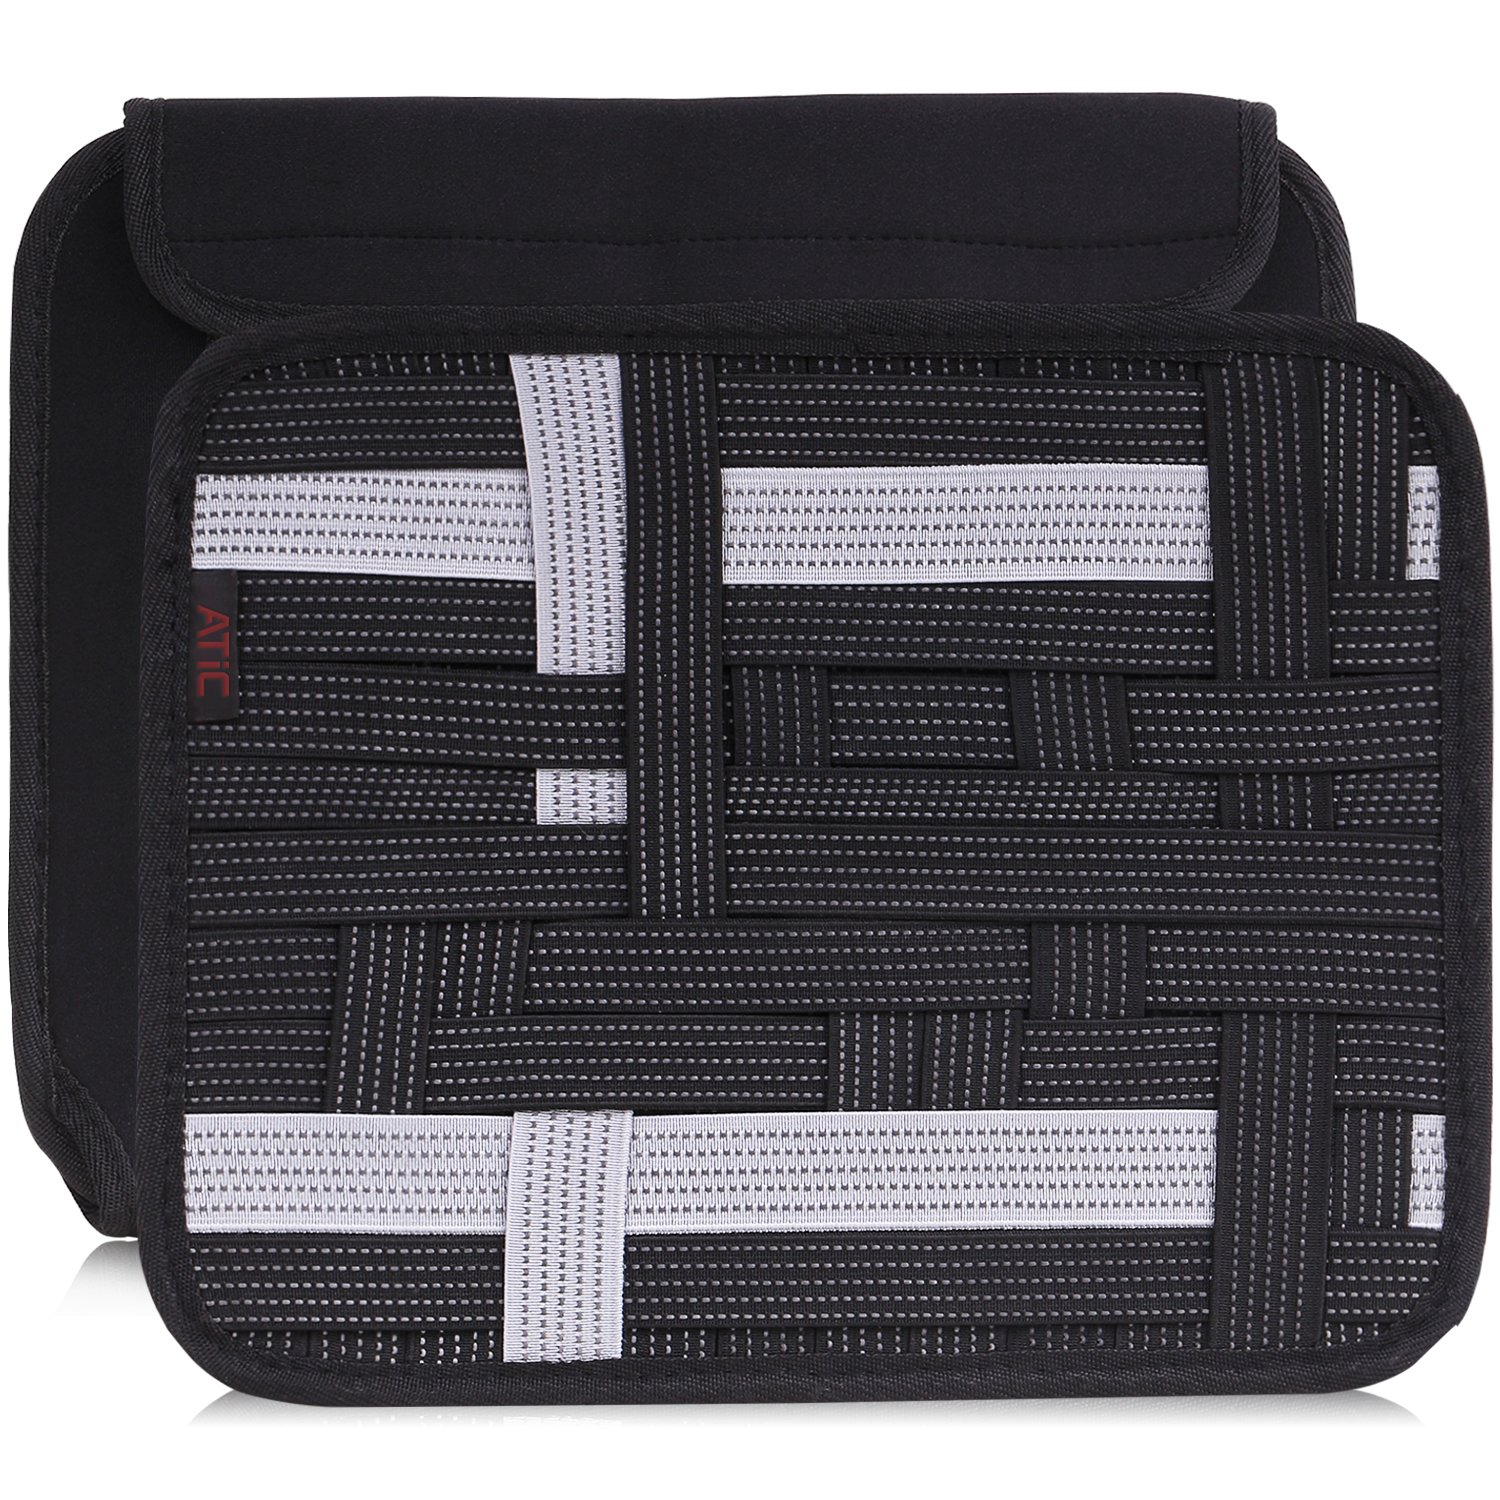 MoKo Organizer Bag, Travel Cable Phone Charger Electronics Accessories Case Bag, with Sleeve for Tablet / Laptop, Black